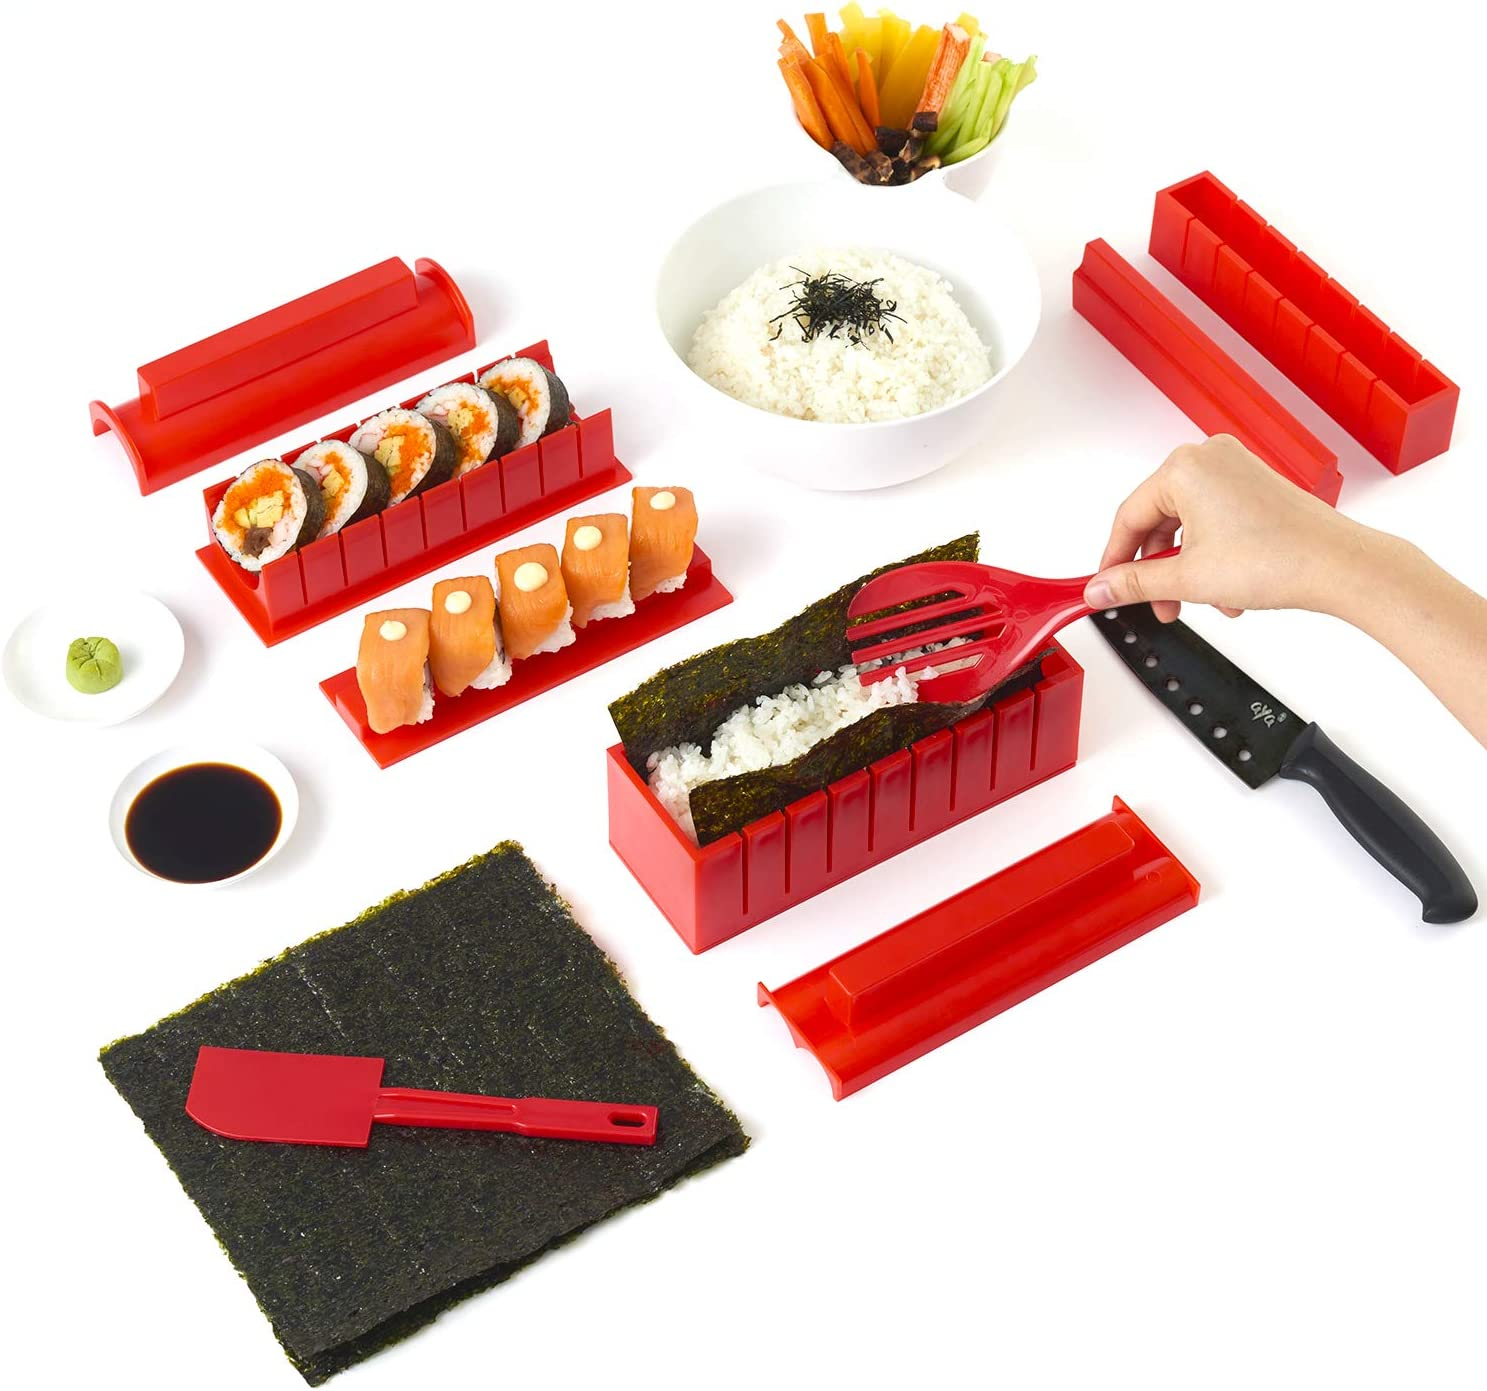 Sushi Making Kit from Amazon  nut-free school lunch